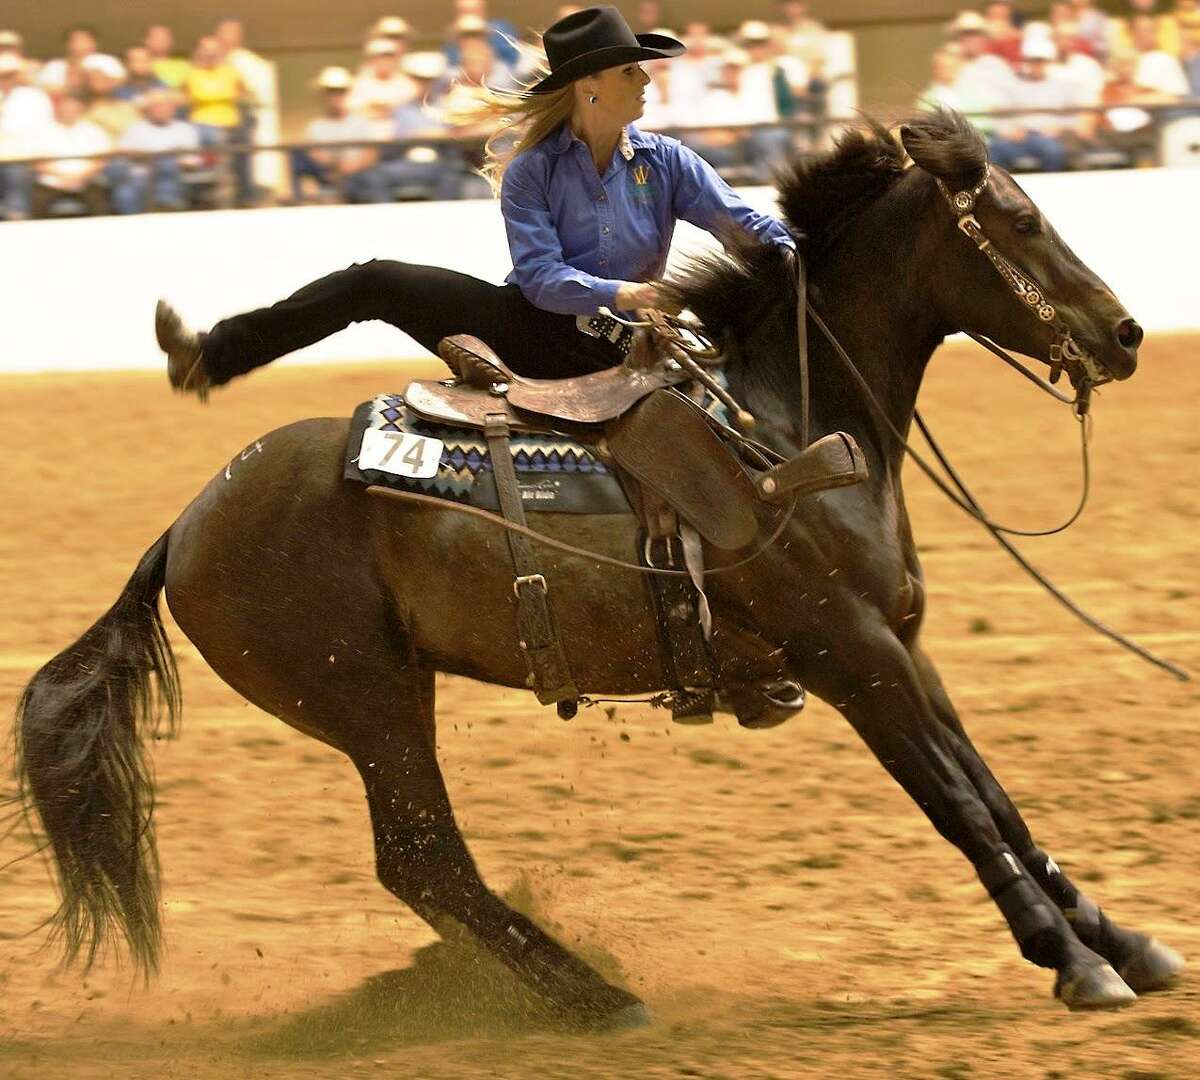 """Cowgirl Wylene Wilson in a scene from the documentary """"Wild Horse, Wild Ride"""""""